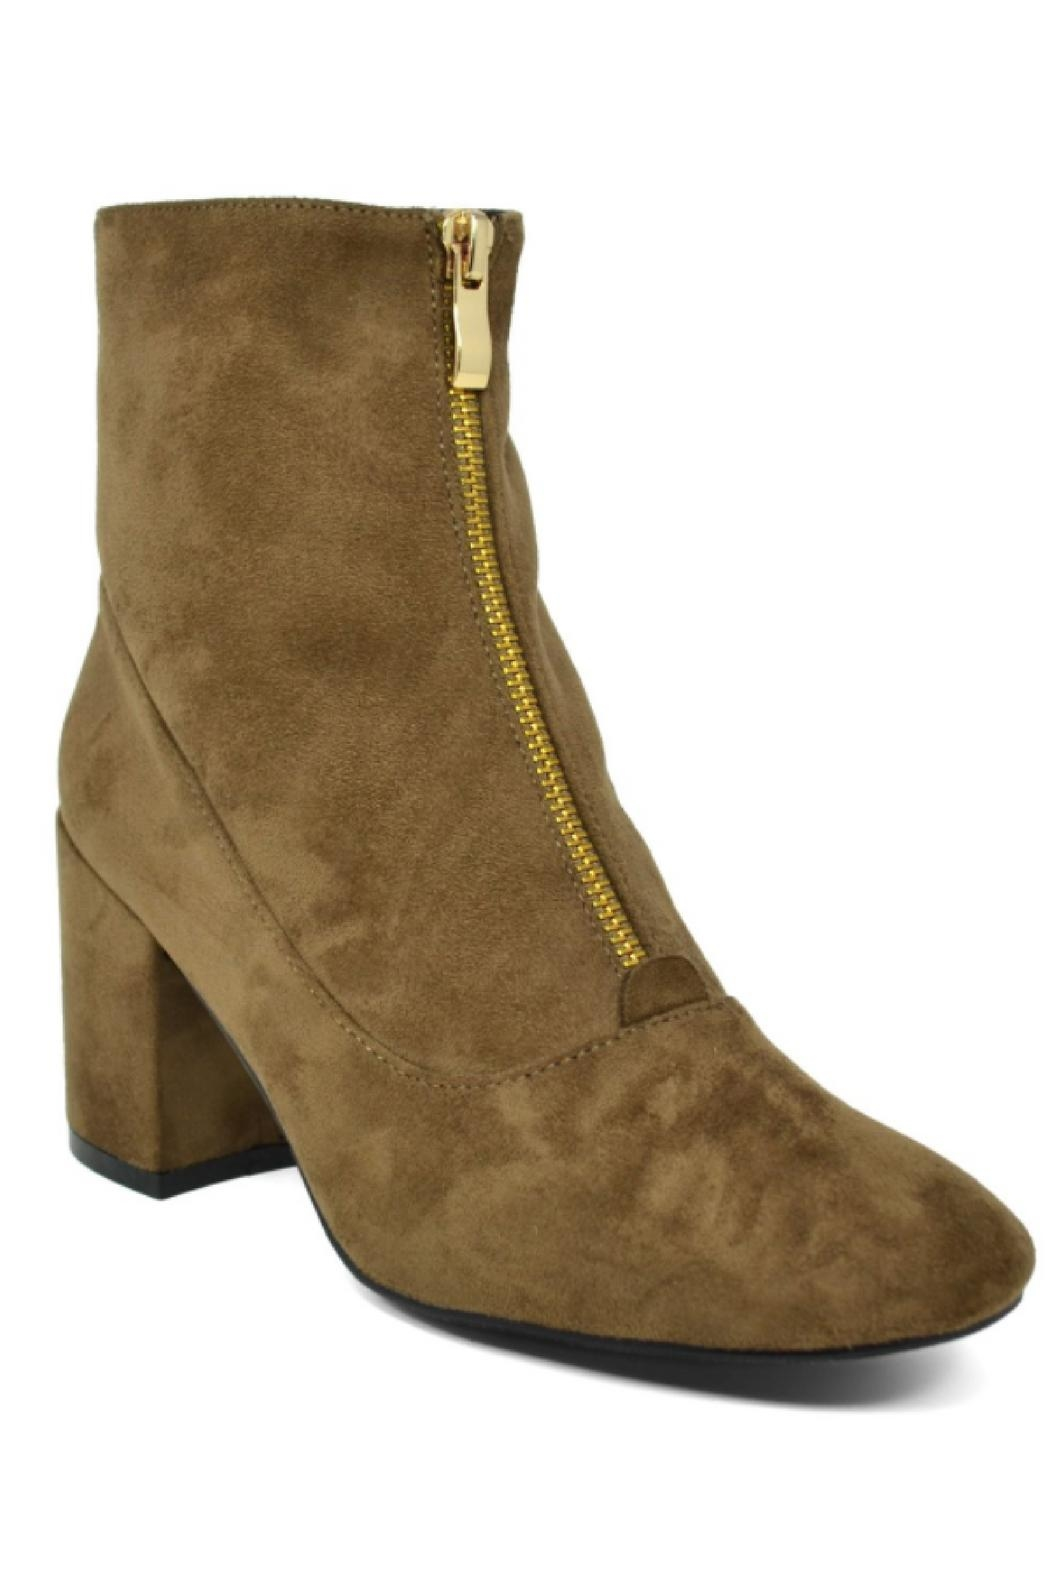 Hot Kiss Zippy-Taupe Suede Bootie - Front Cropped Image